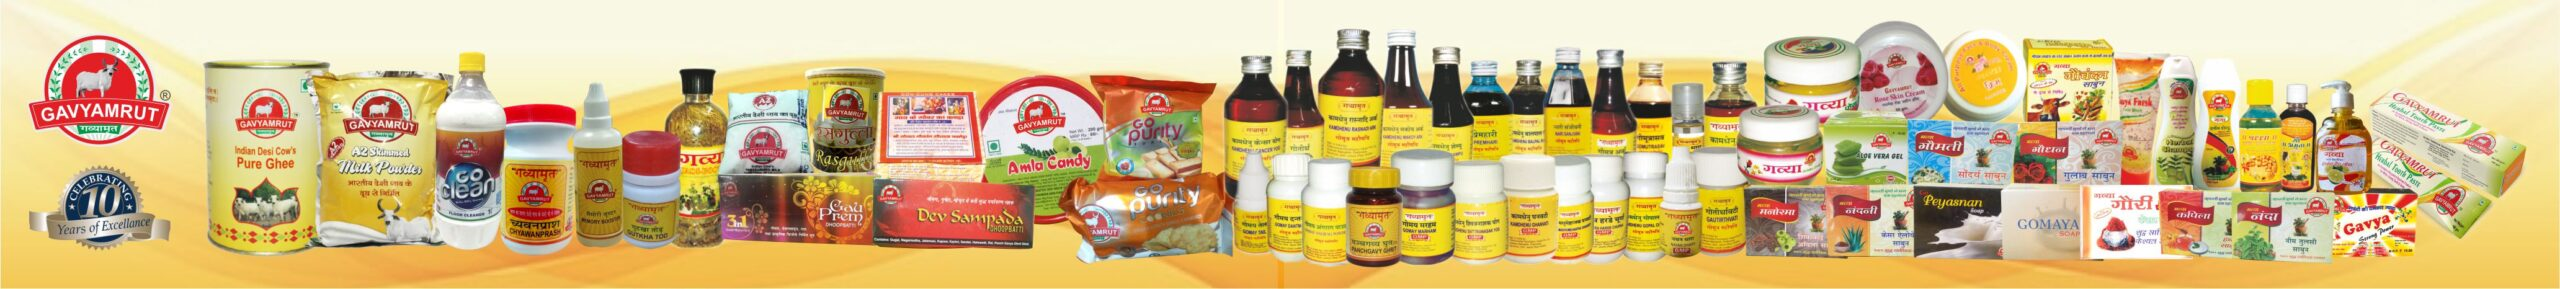 Gavyamrut Products Group